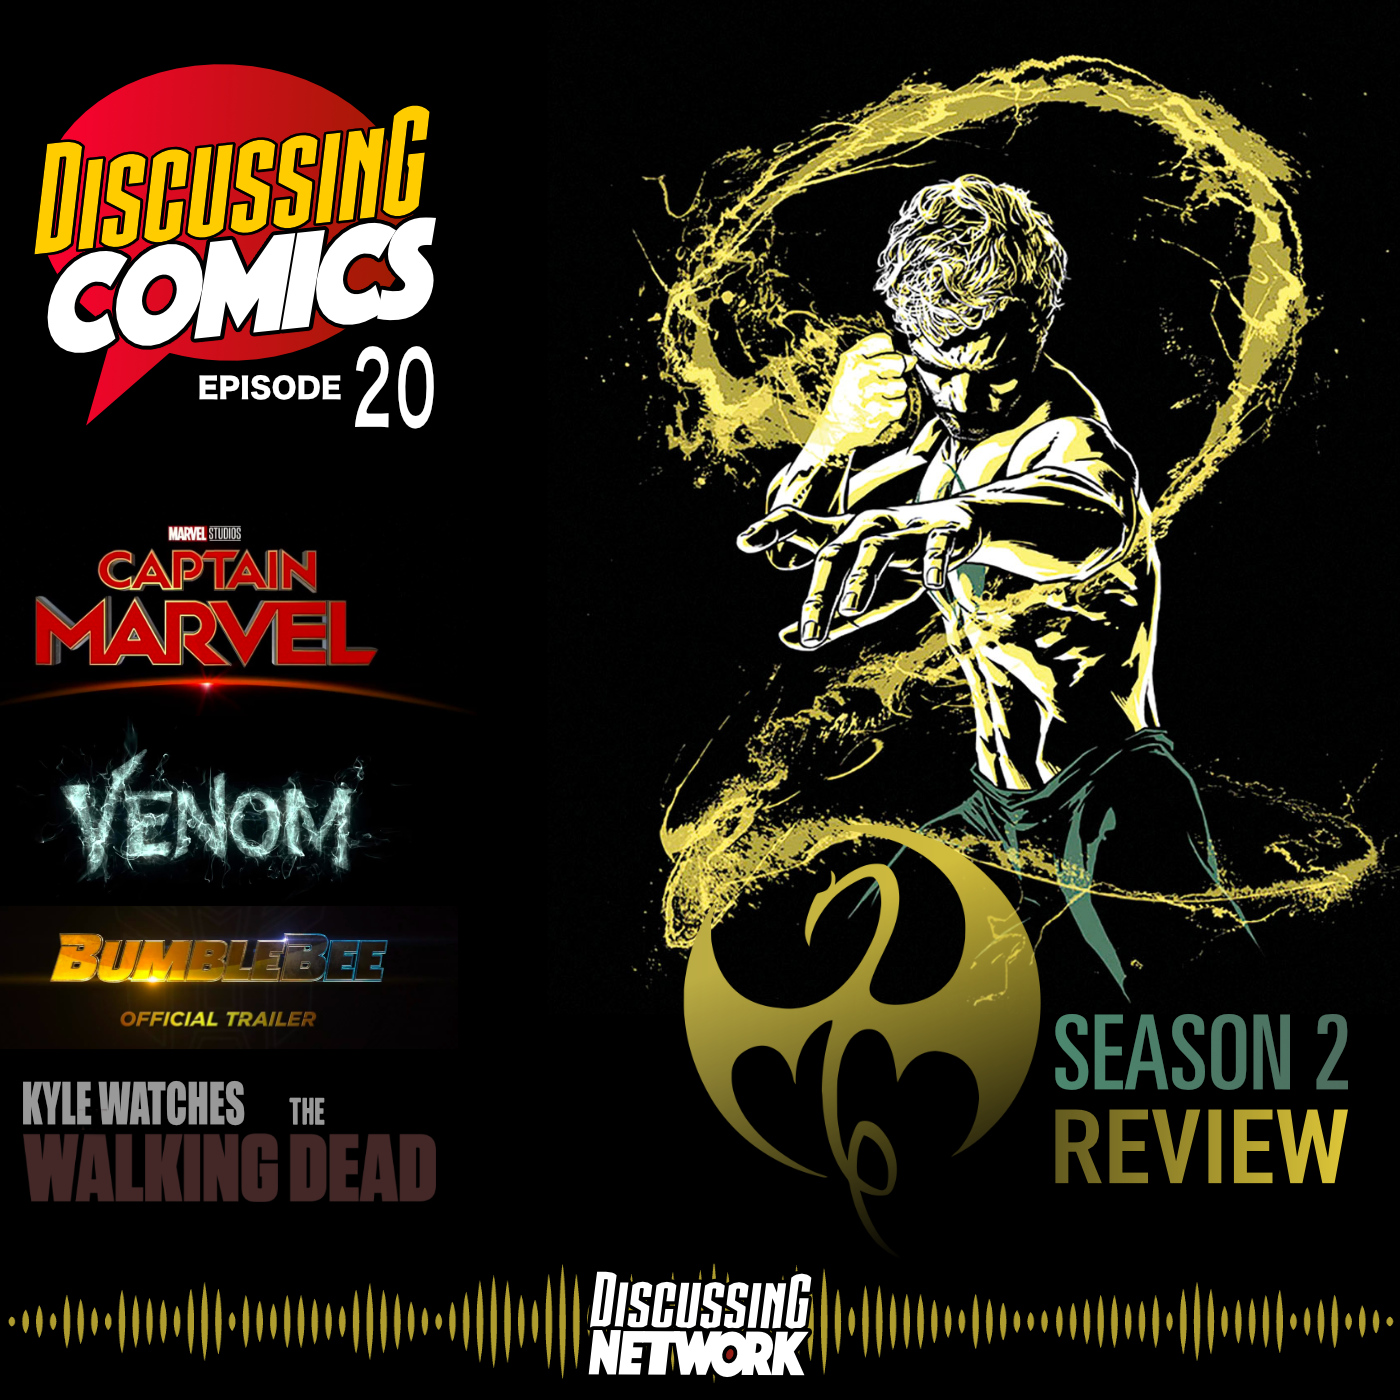 Discussing Comics Review of Iron Fist Series 2